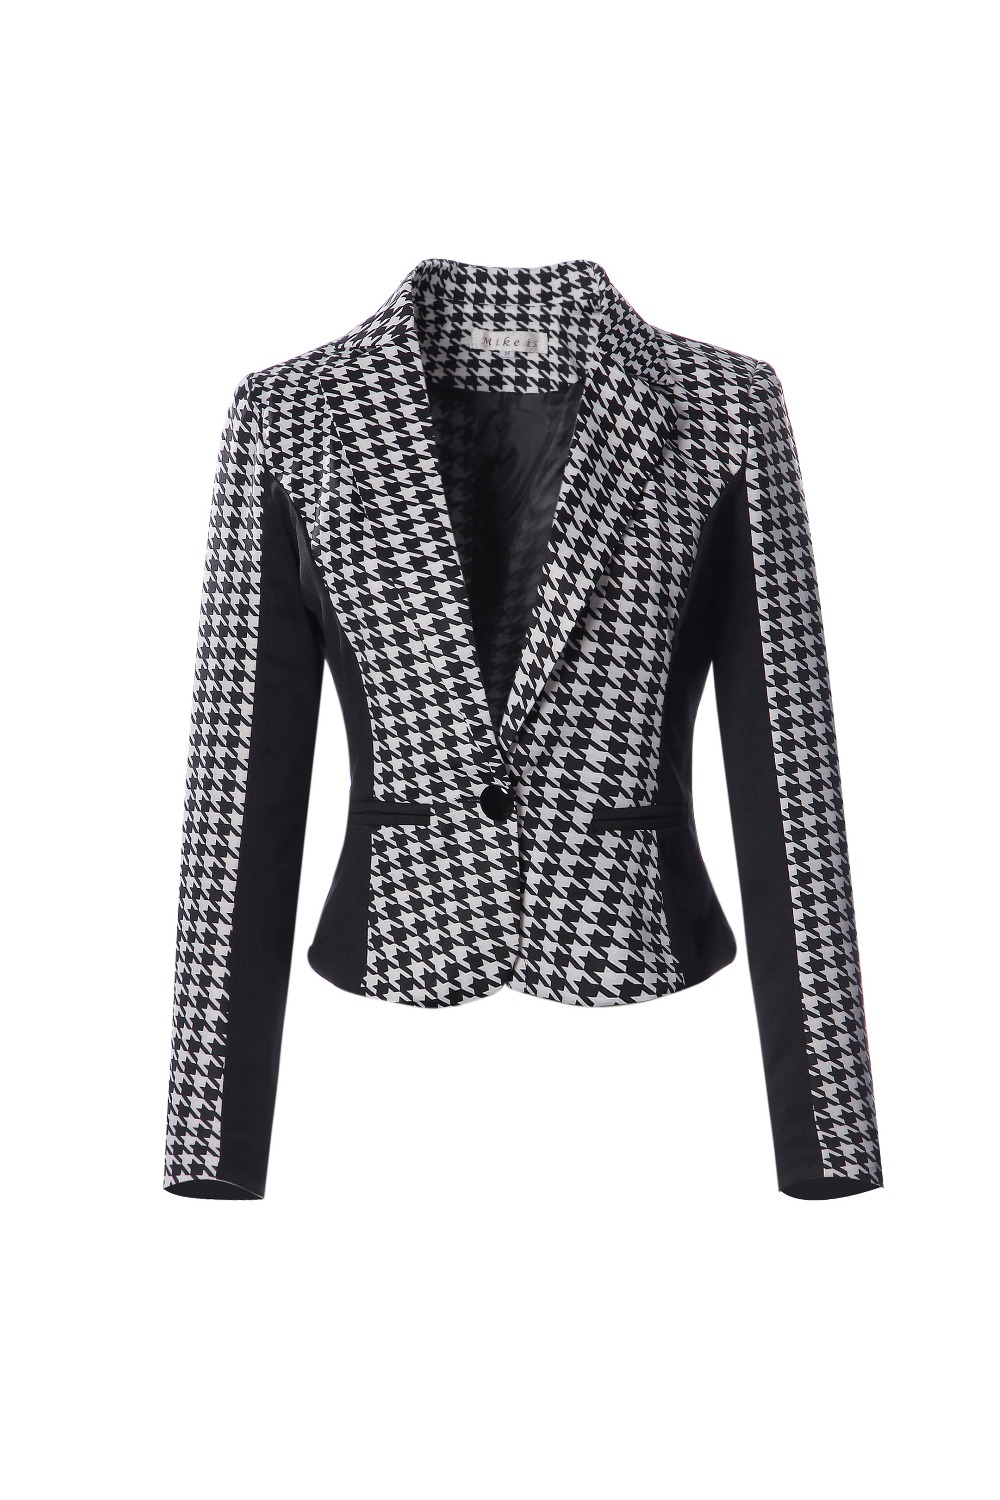 Women's Clothing ... Blazer & Suits ... 32656937768 ... 5 ... 2018 New Arrival Women Long Sleeve Notched Style Blazer Suits Office Casual  Plaid Color Clothing Female Blazer Single Breasted ...